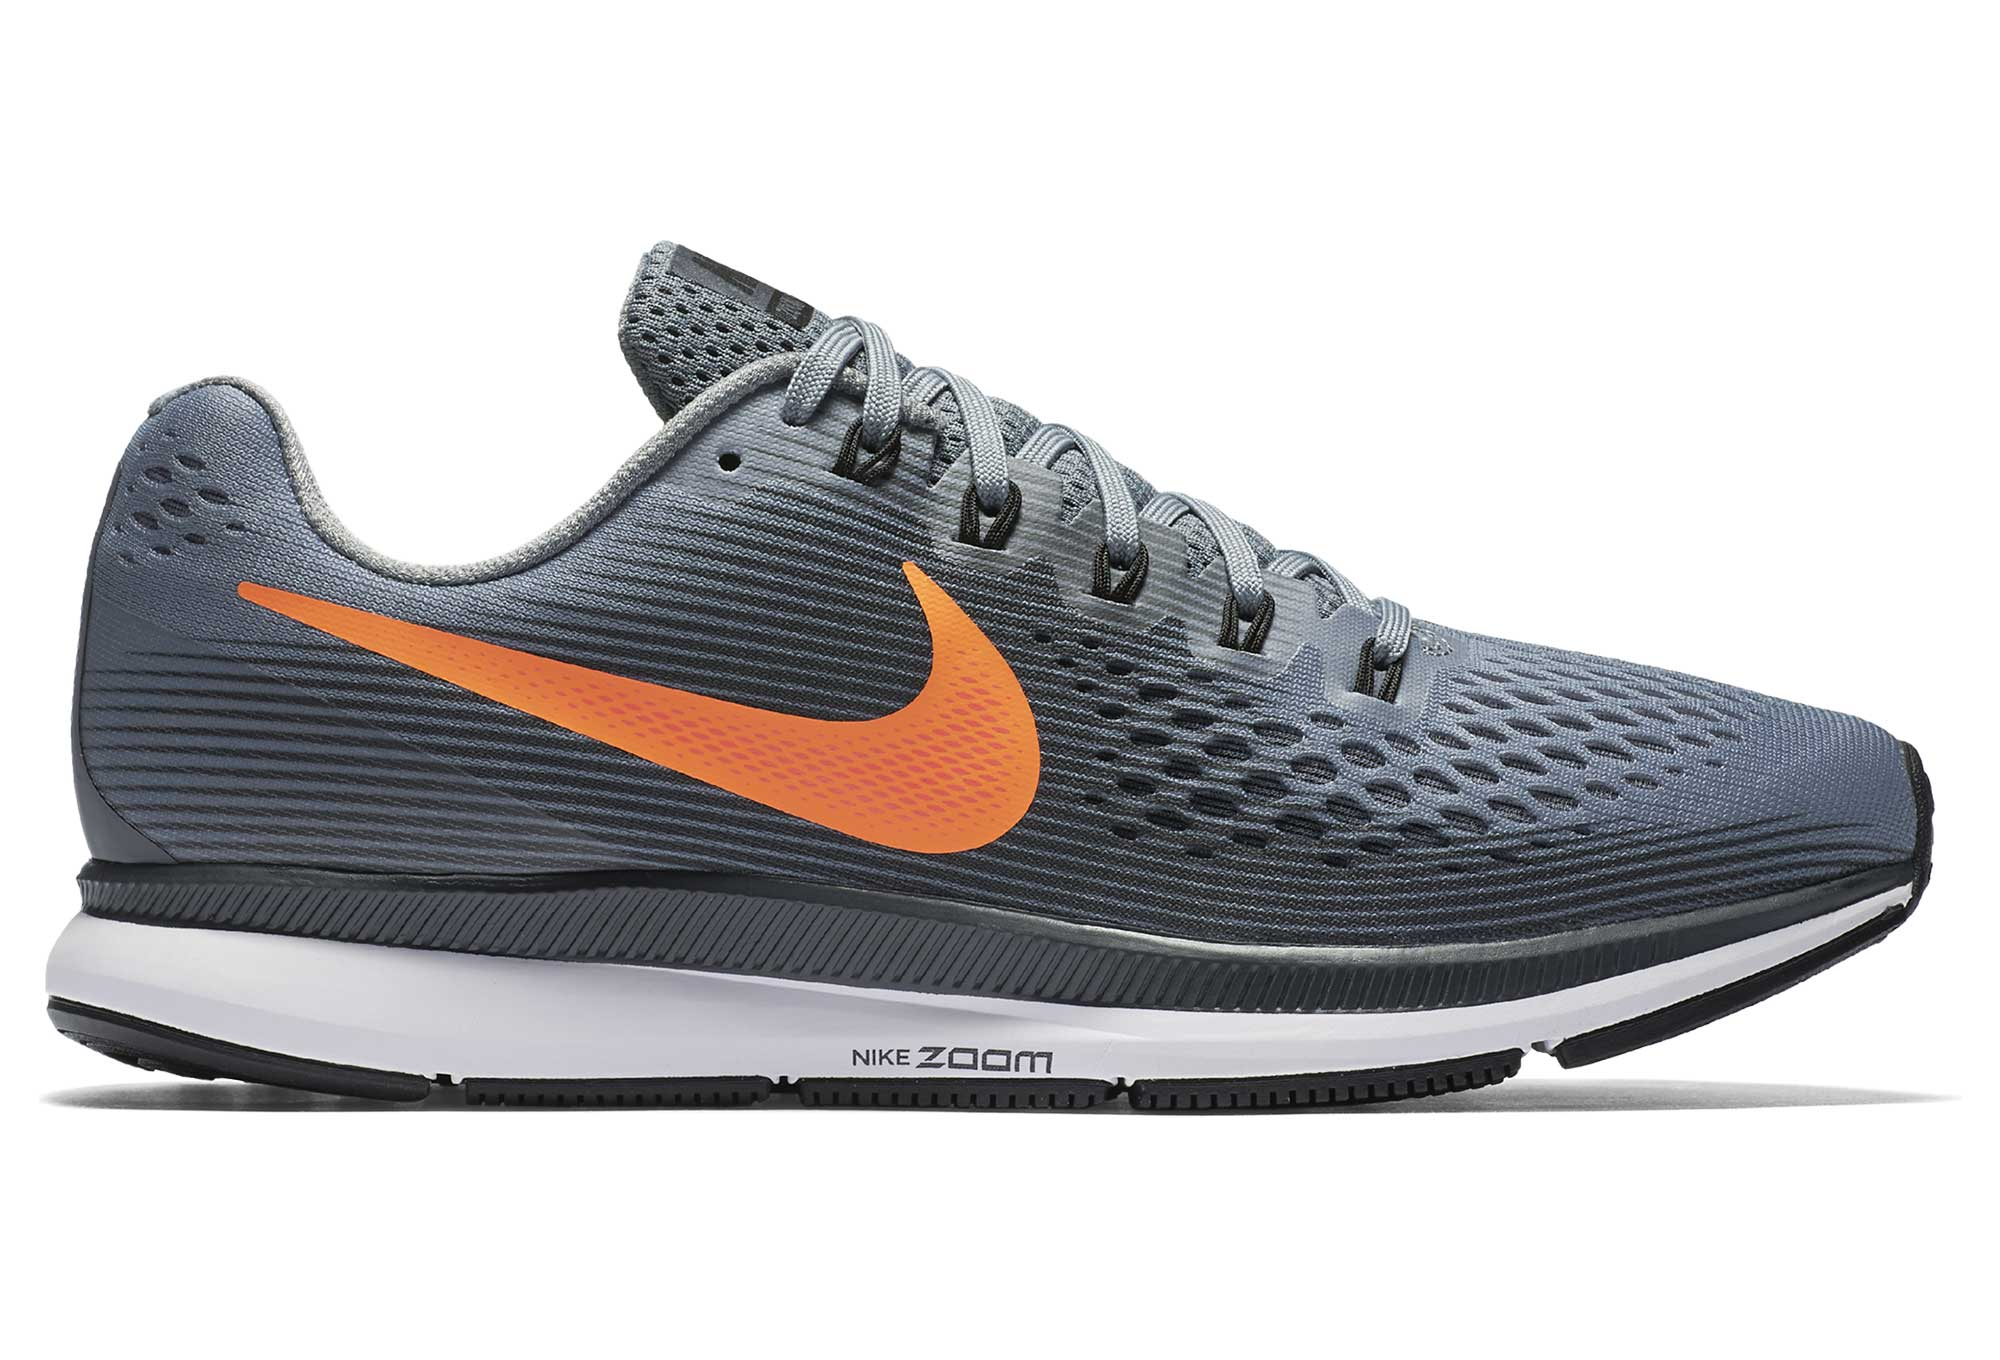 edf9758be7f2 NIKE AIR ZOOM PEGASUS 34 Shoes Grey Orange Men